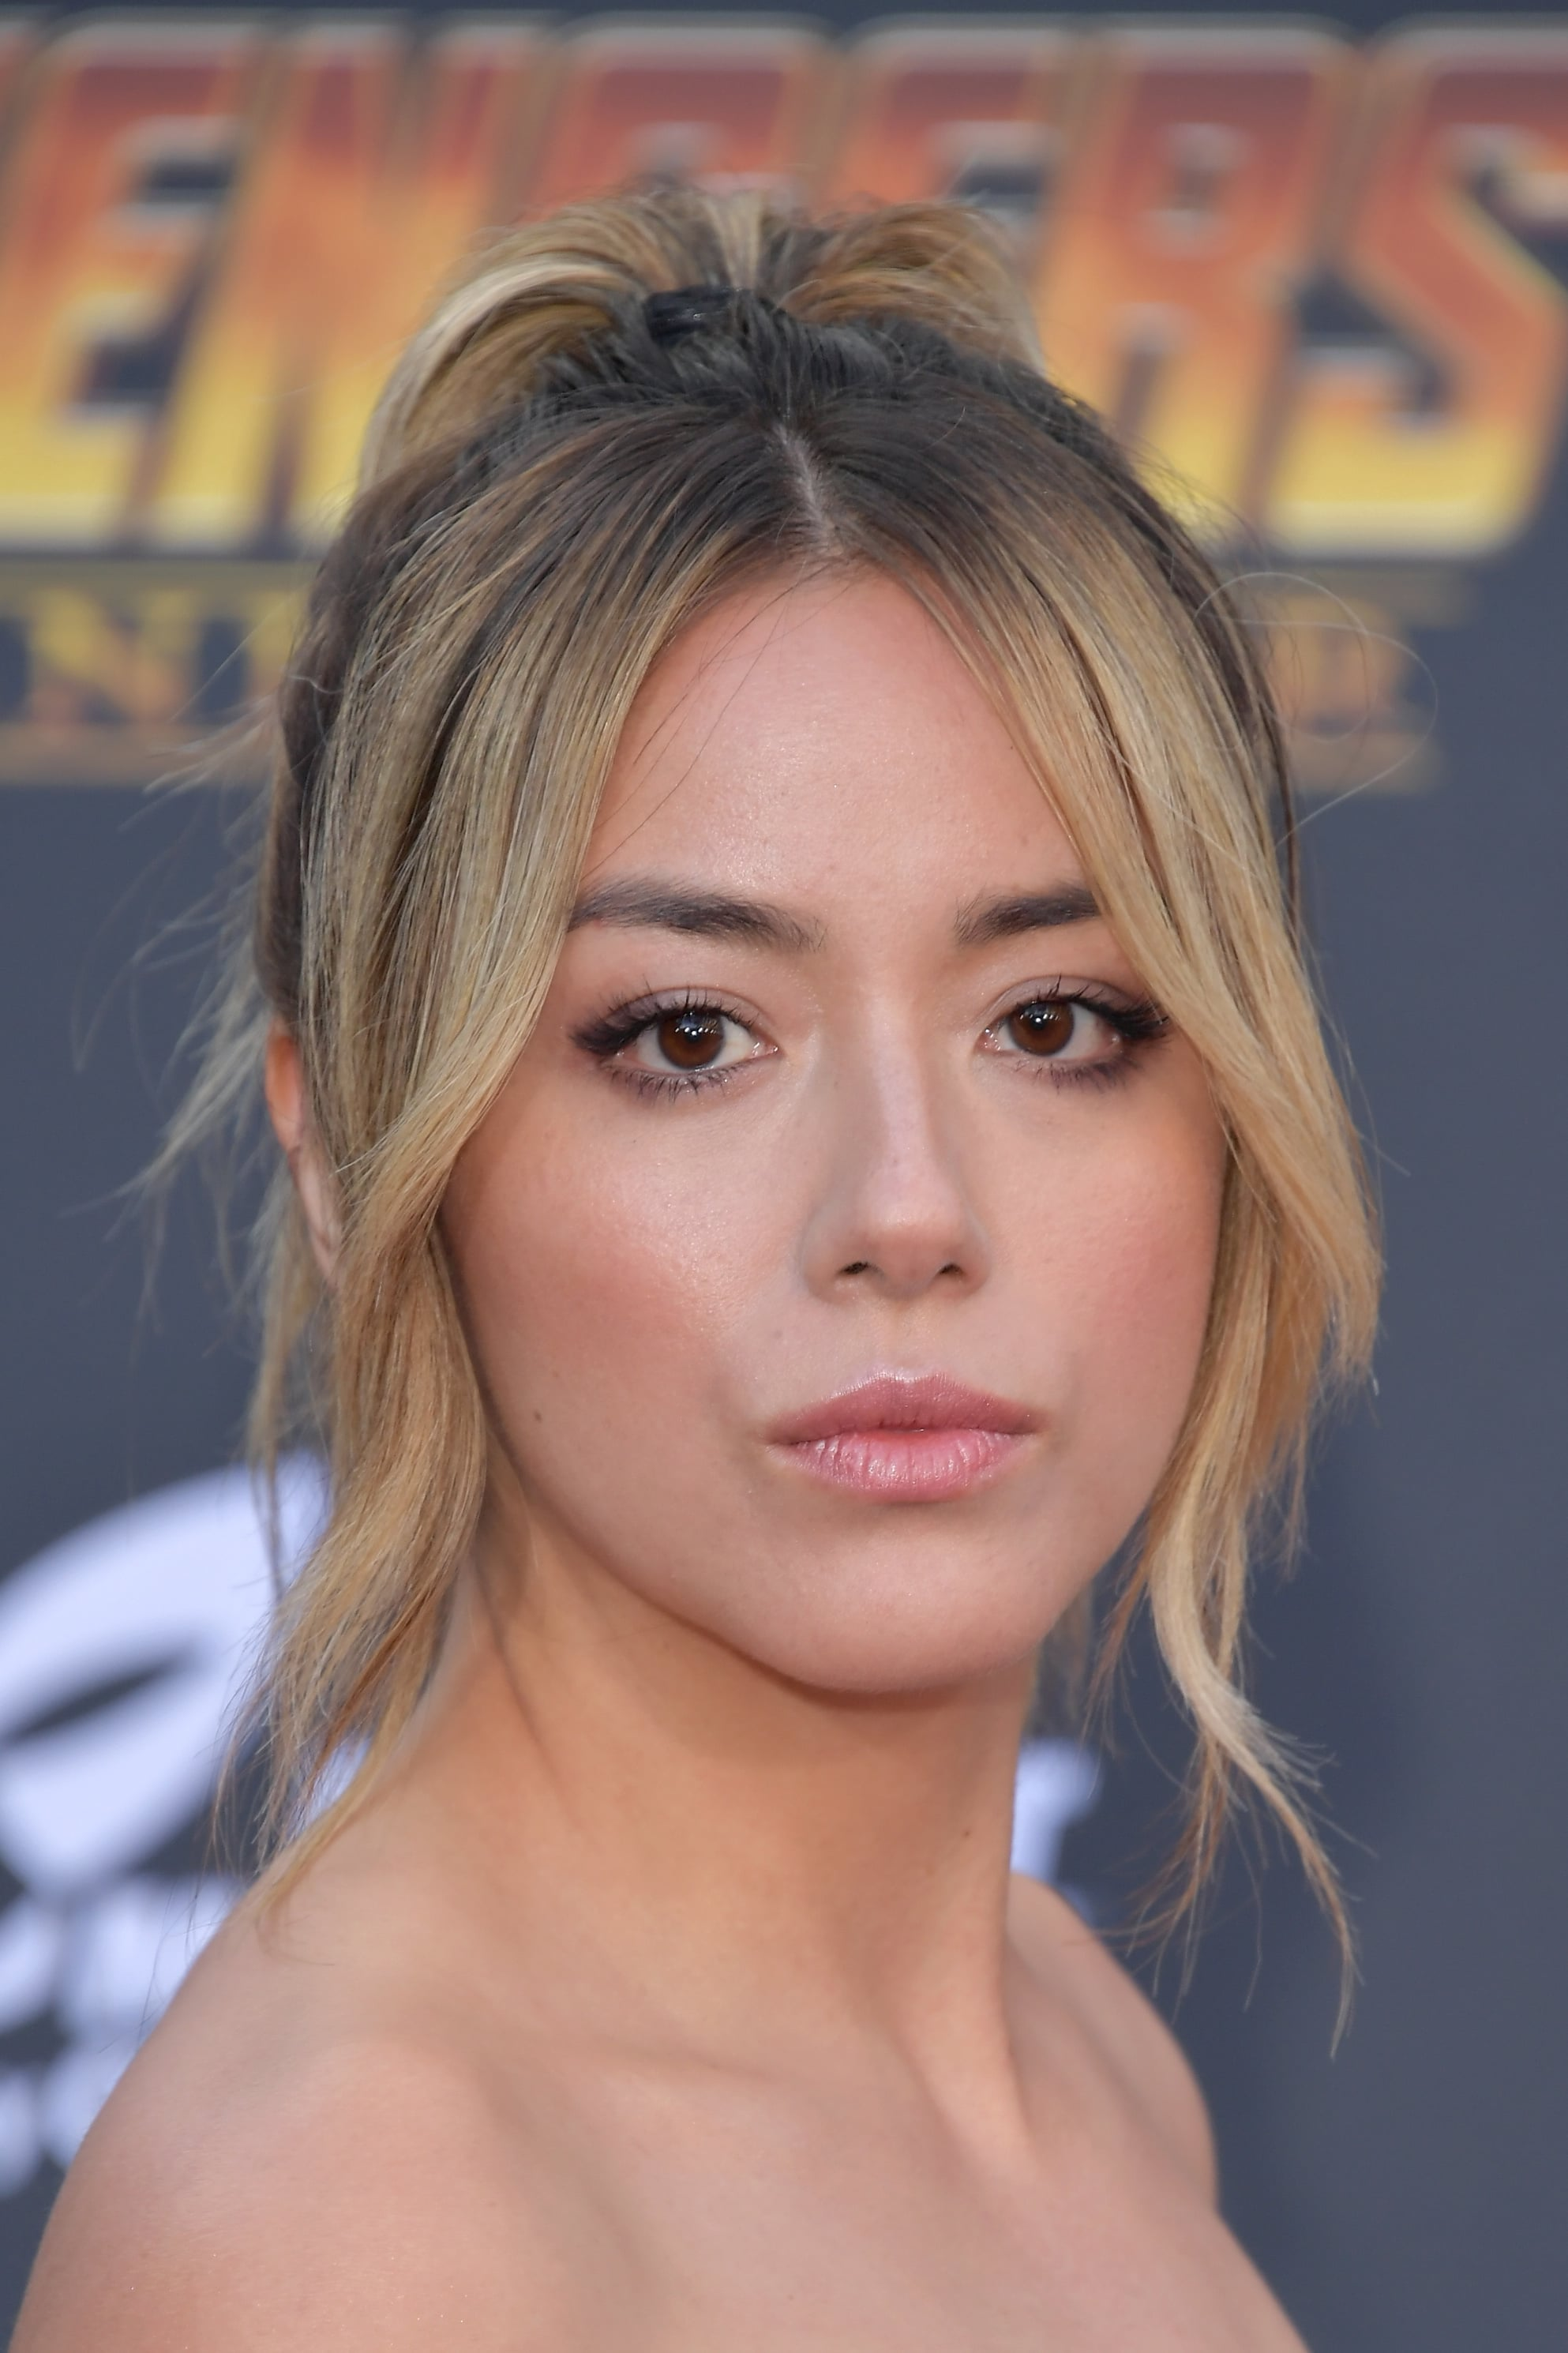 LOS ANGELES, CA - APRIL 23:  Chloe Bennet attends the premiere of Disney and Marvel's 'Avengers: Infinity War' on April 23, 2018 in Los Angeles, California.  (Photo by Neilson Barnard/Getty Images)